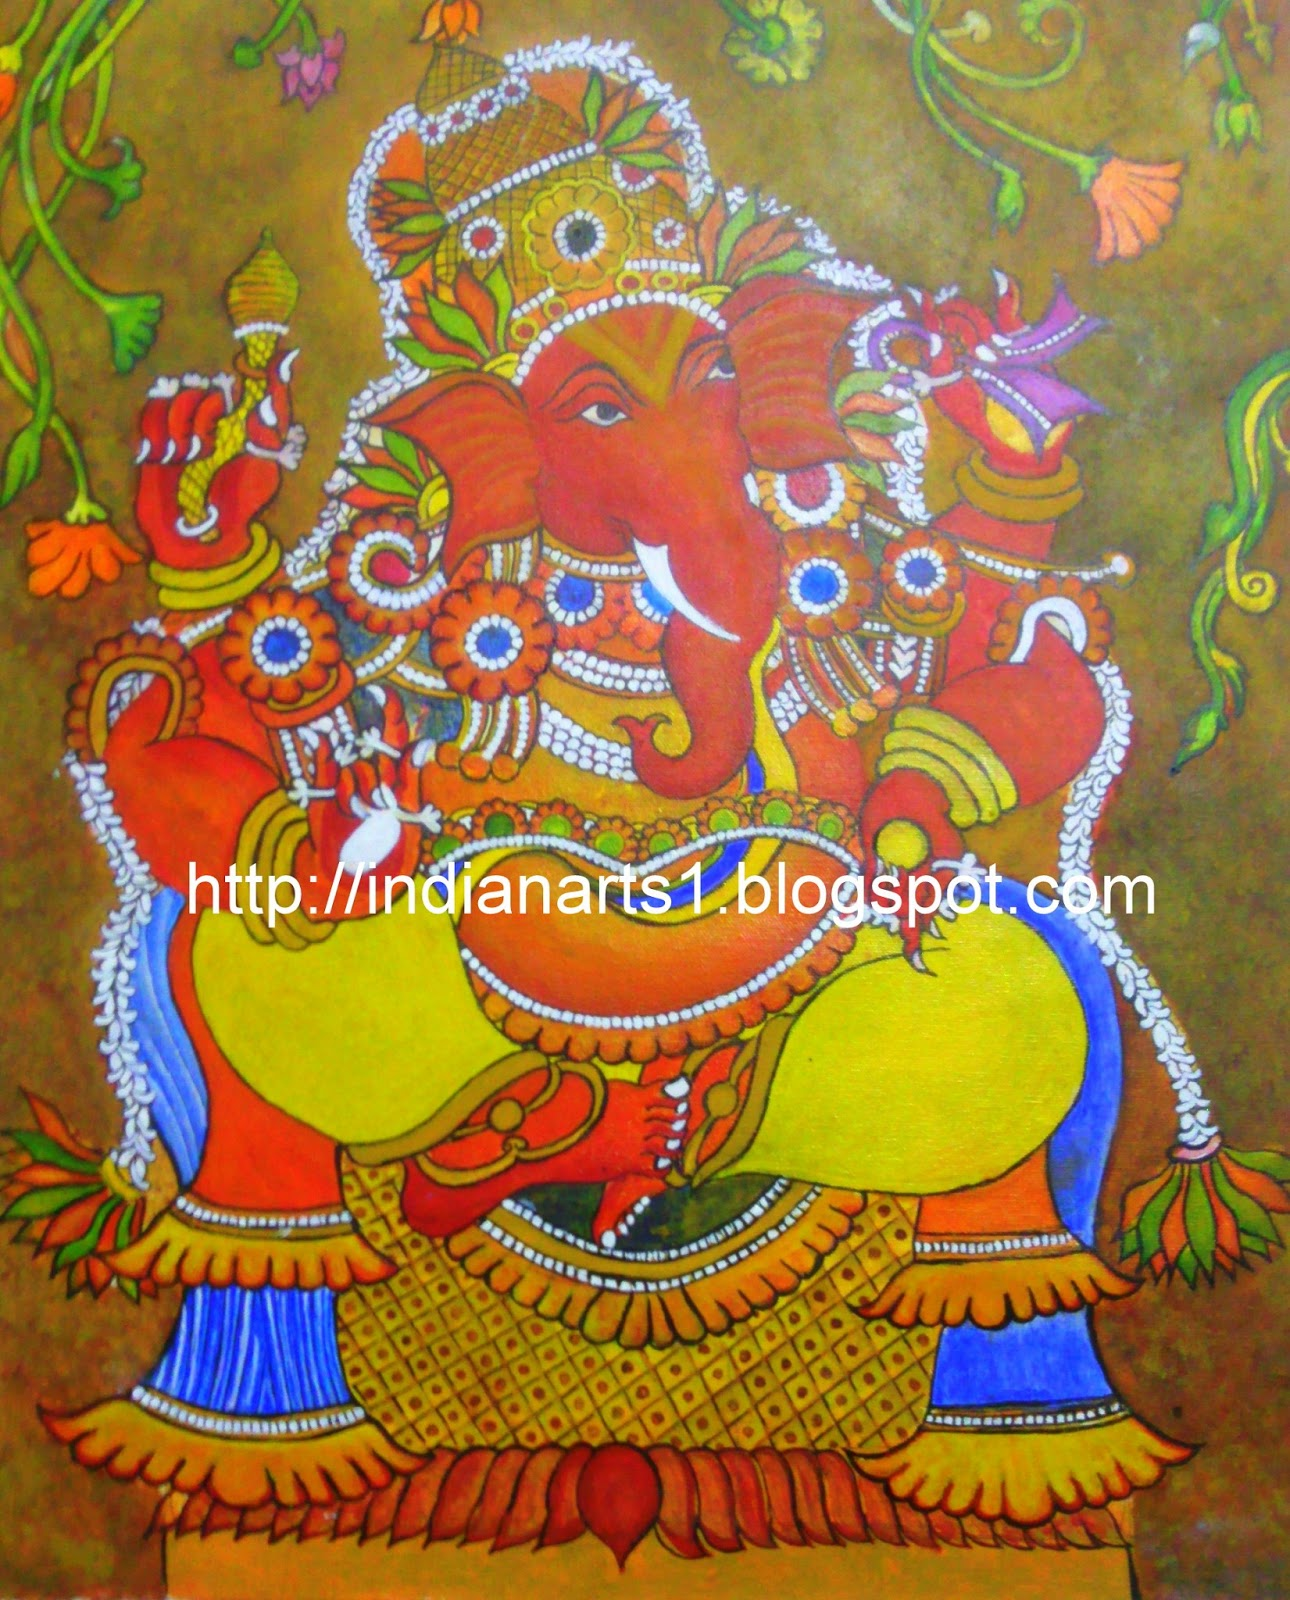 Arts and crafts ganesha mural painting kerala mural style for Mural art of ganesha